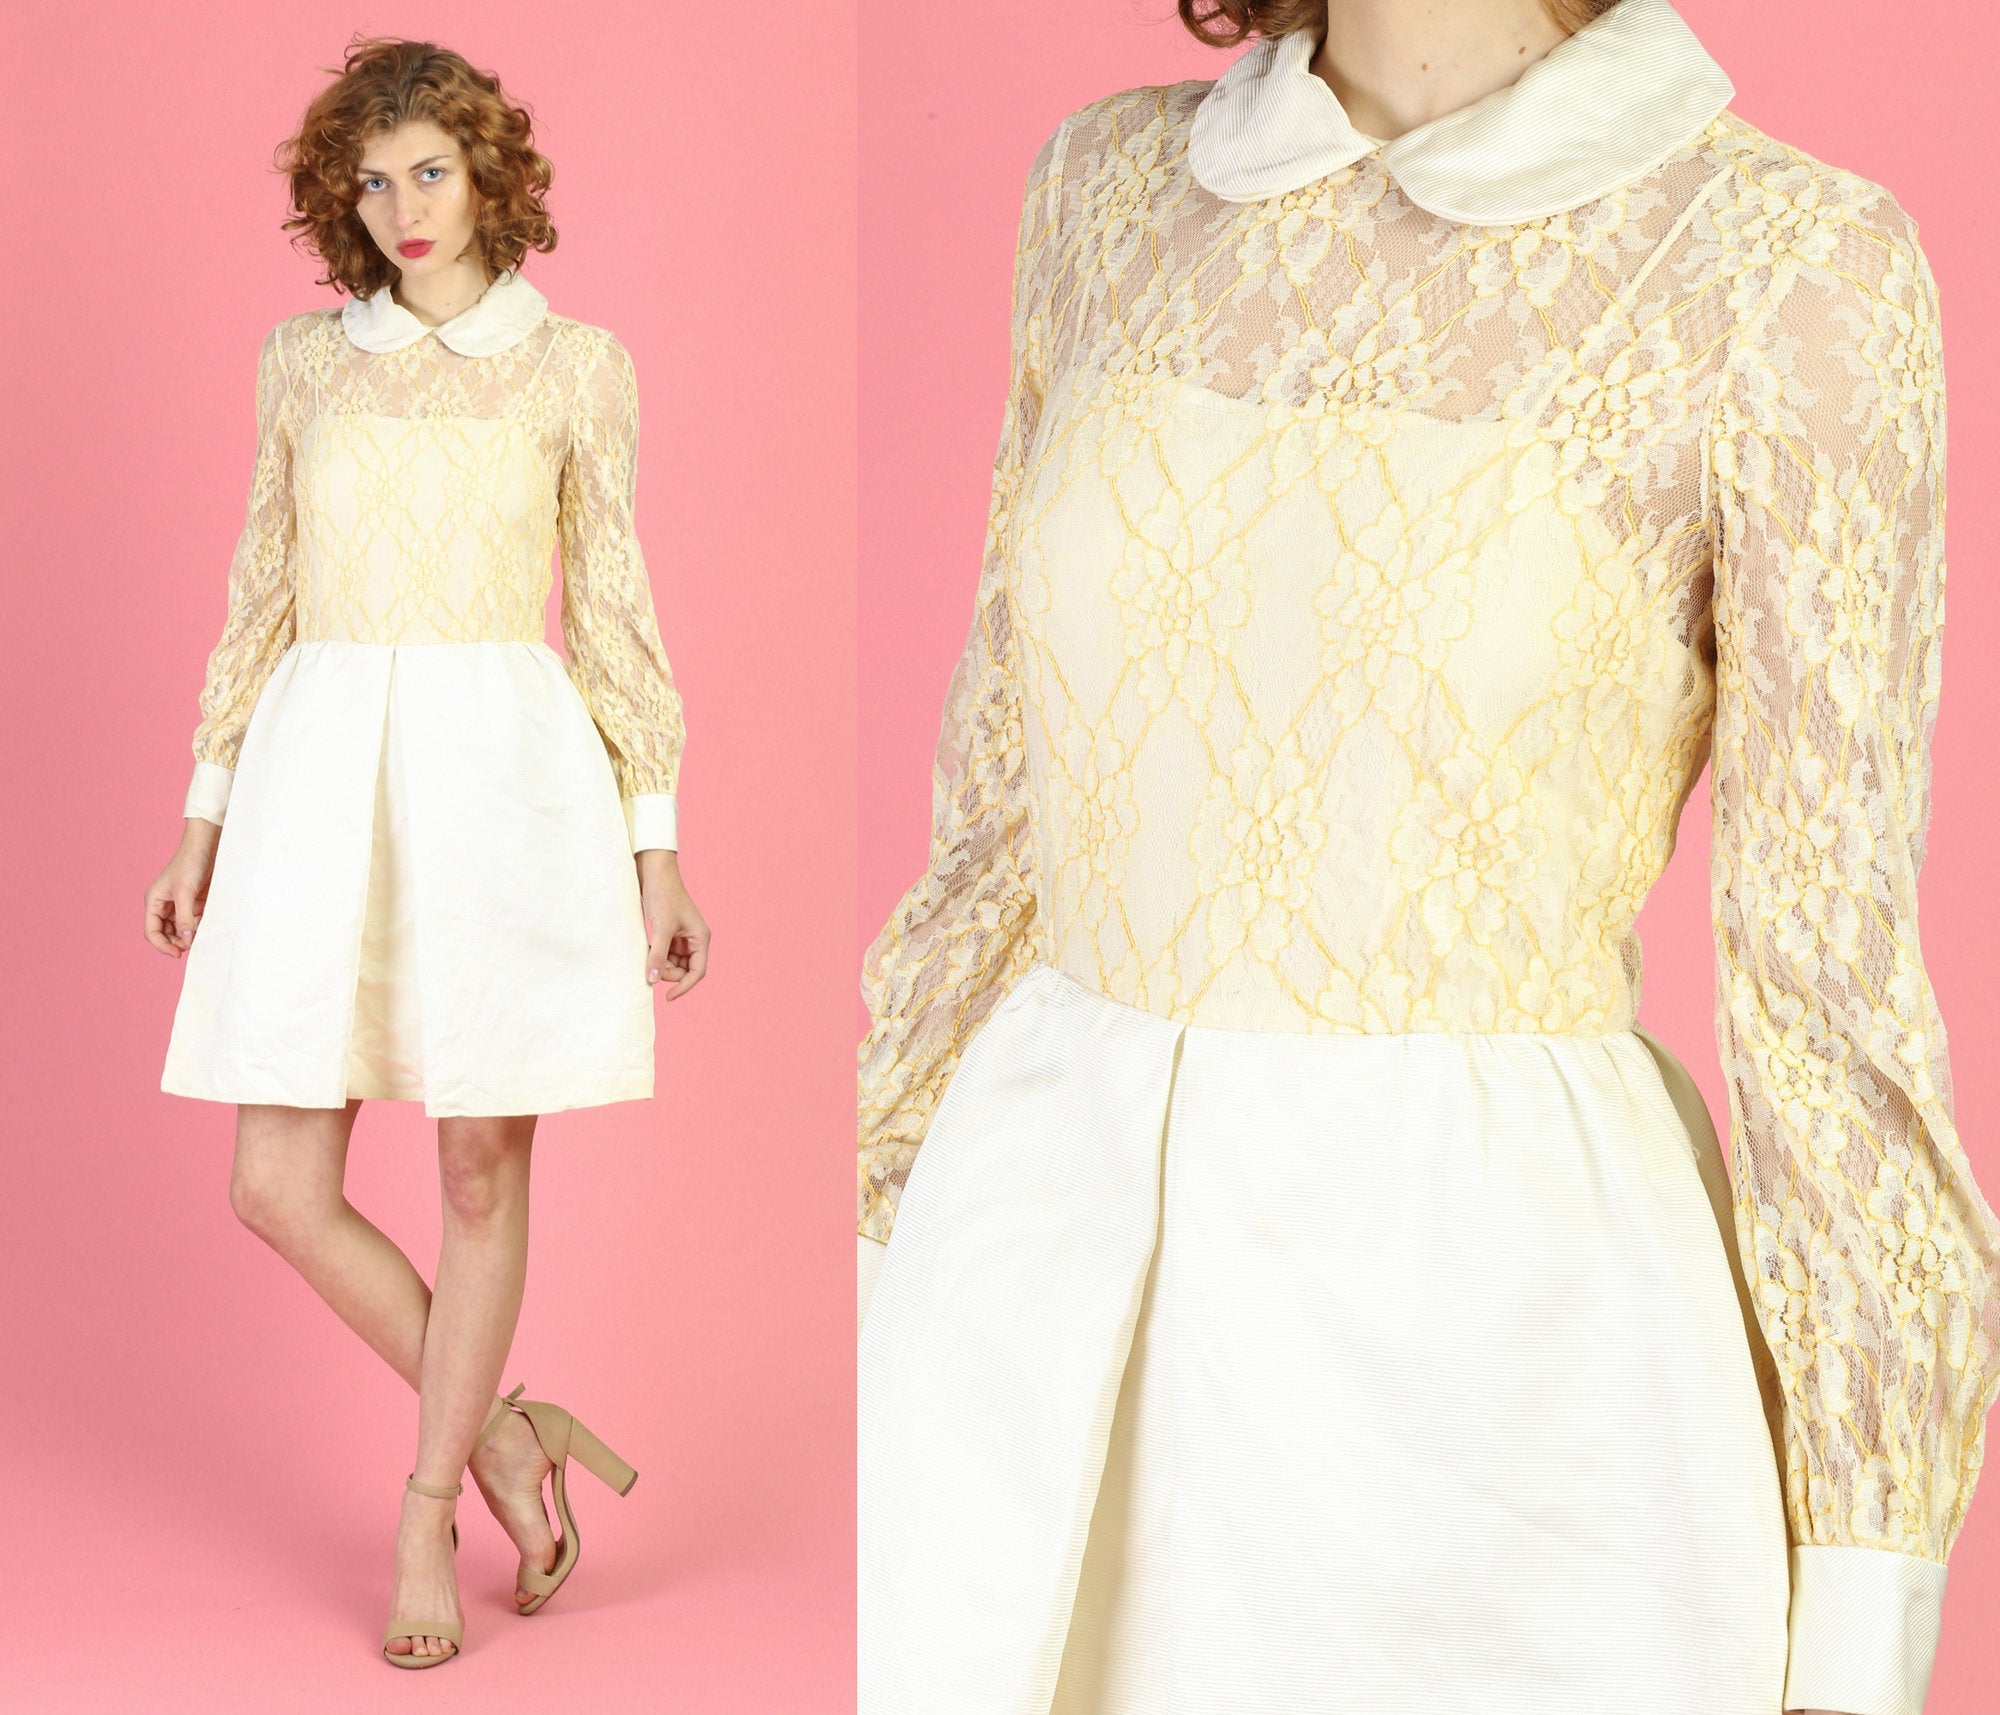 60s 70s Jane Andre California Mod Lace Mini Dress - Small